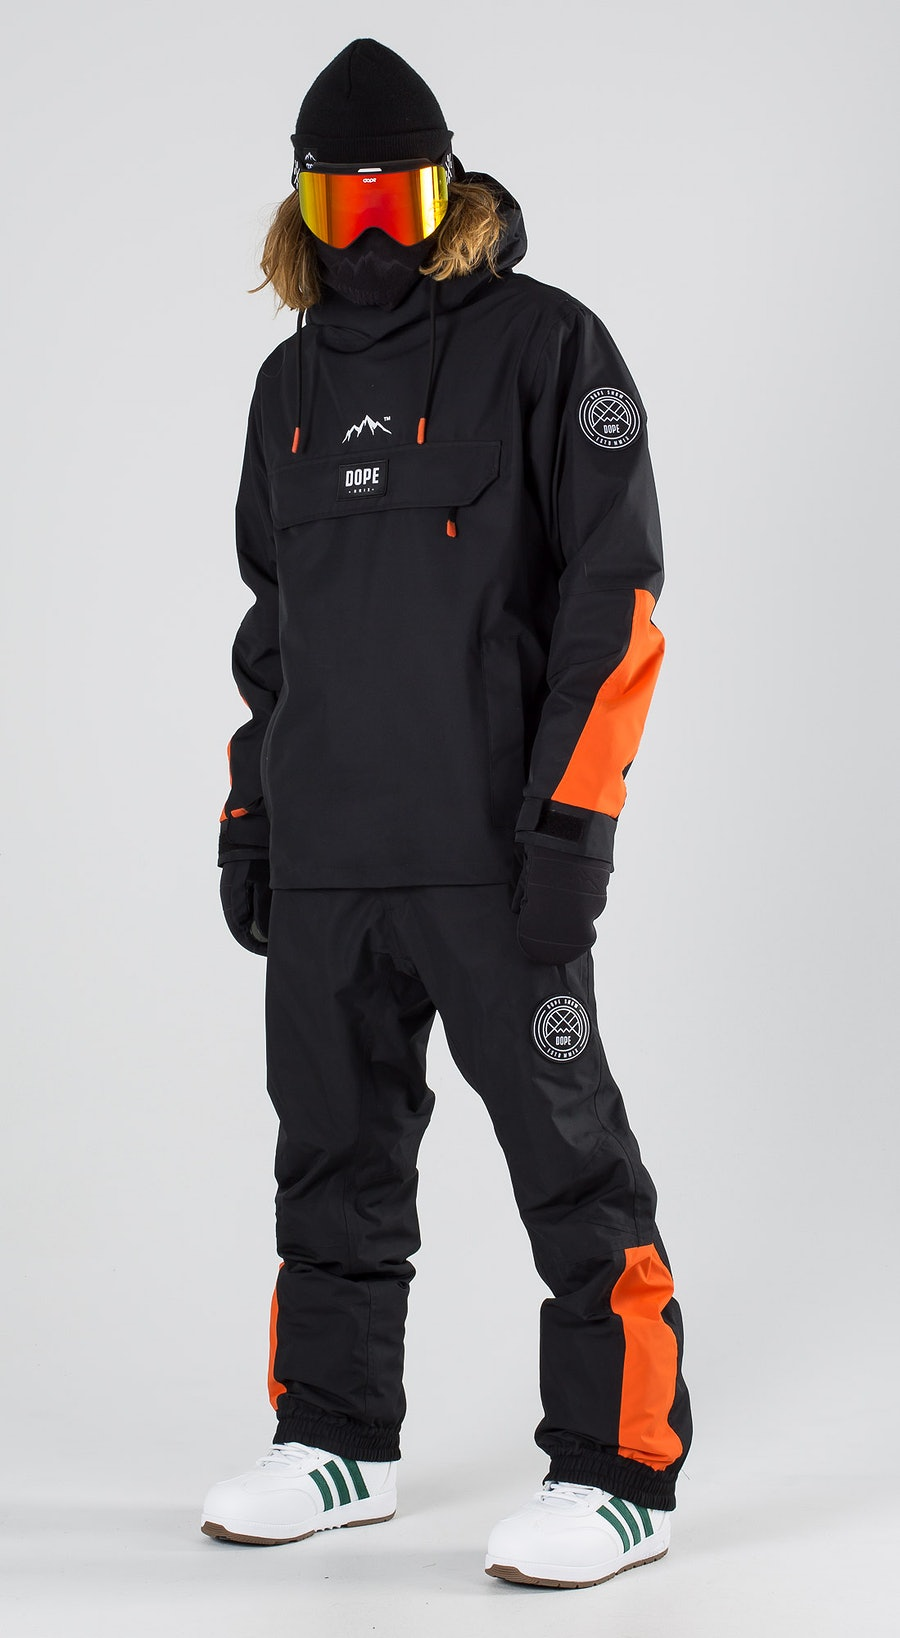 Dope Blizzard LE Black Orange Snowboardkleidung Multi